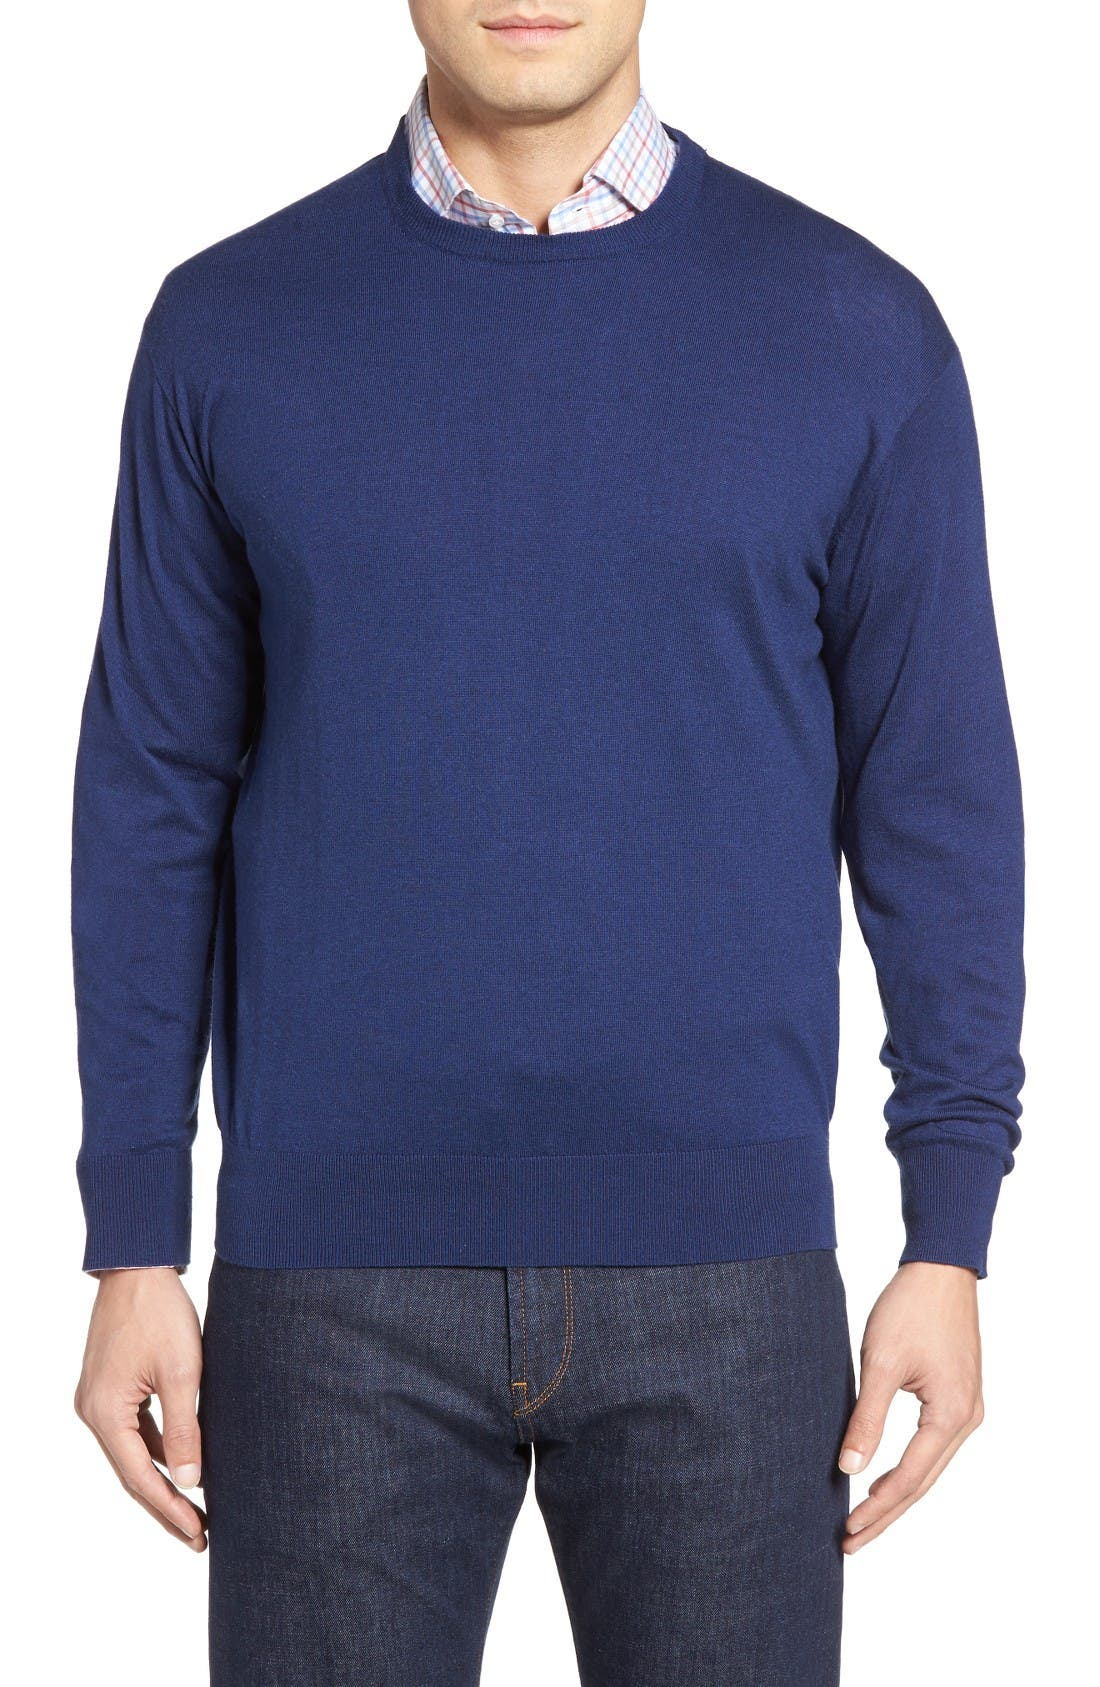 Alternate Image 1 Selected - Peter Millar Crown Sweatshirt